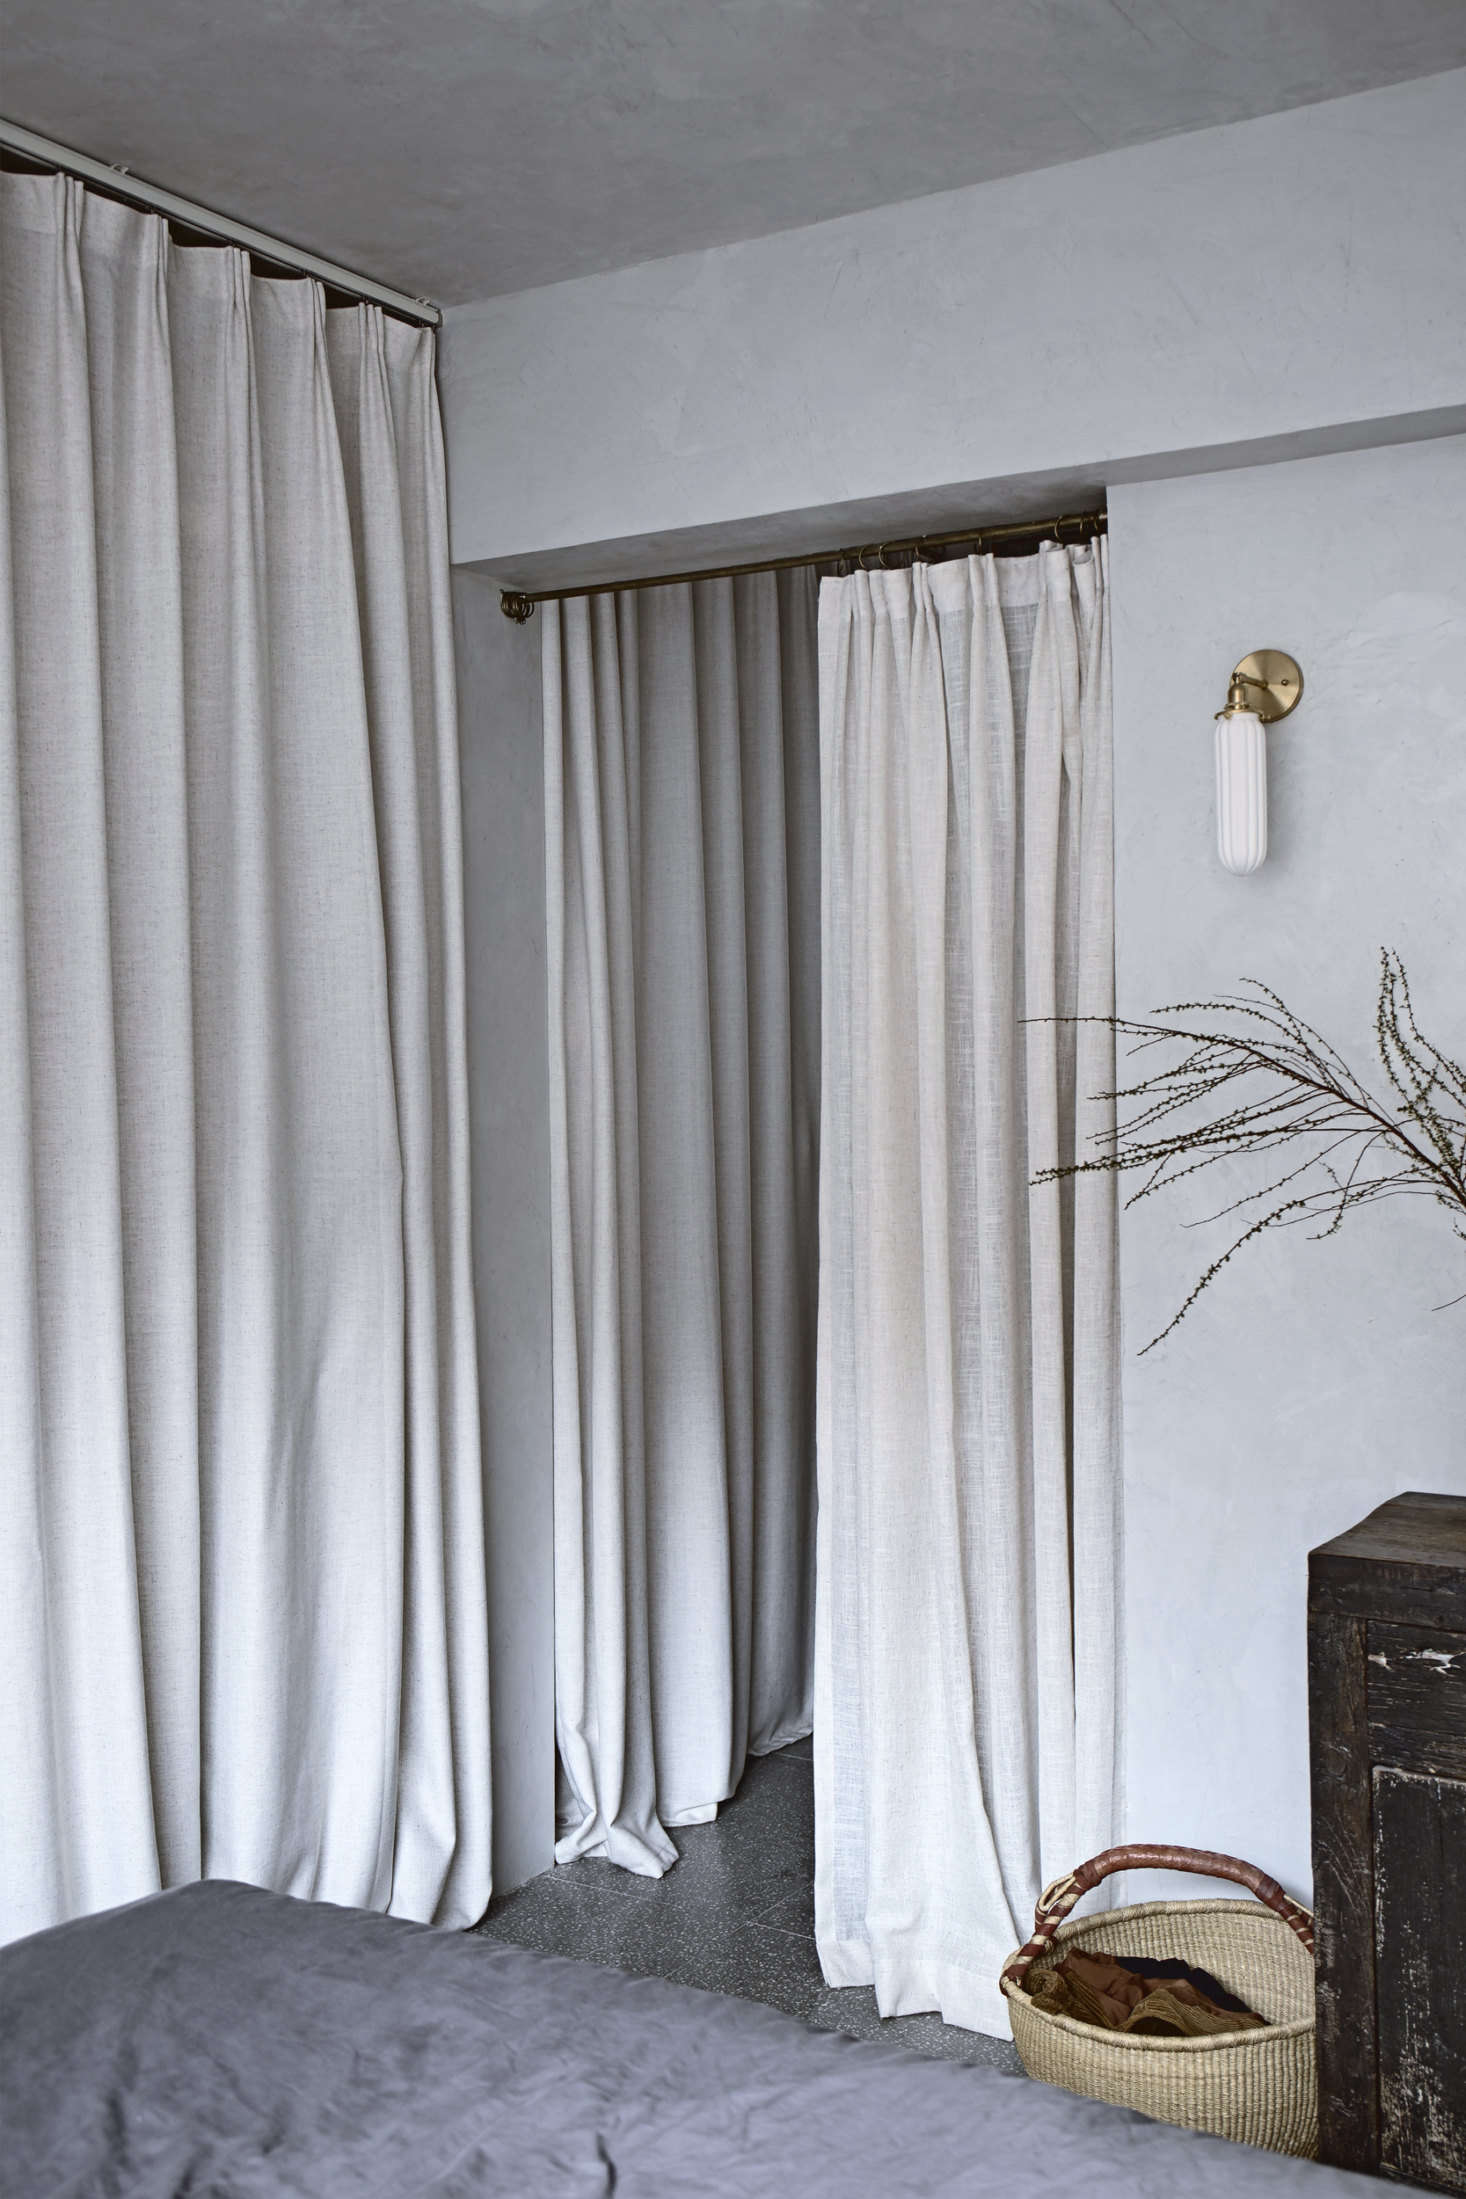 Curtains conceal the walk-in closet. &#8